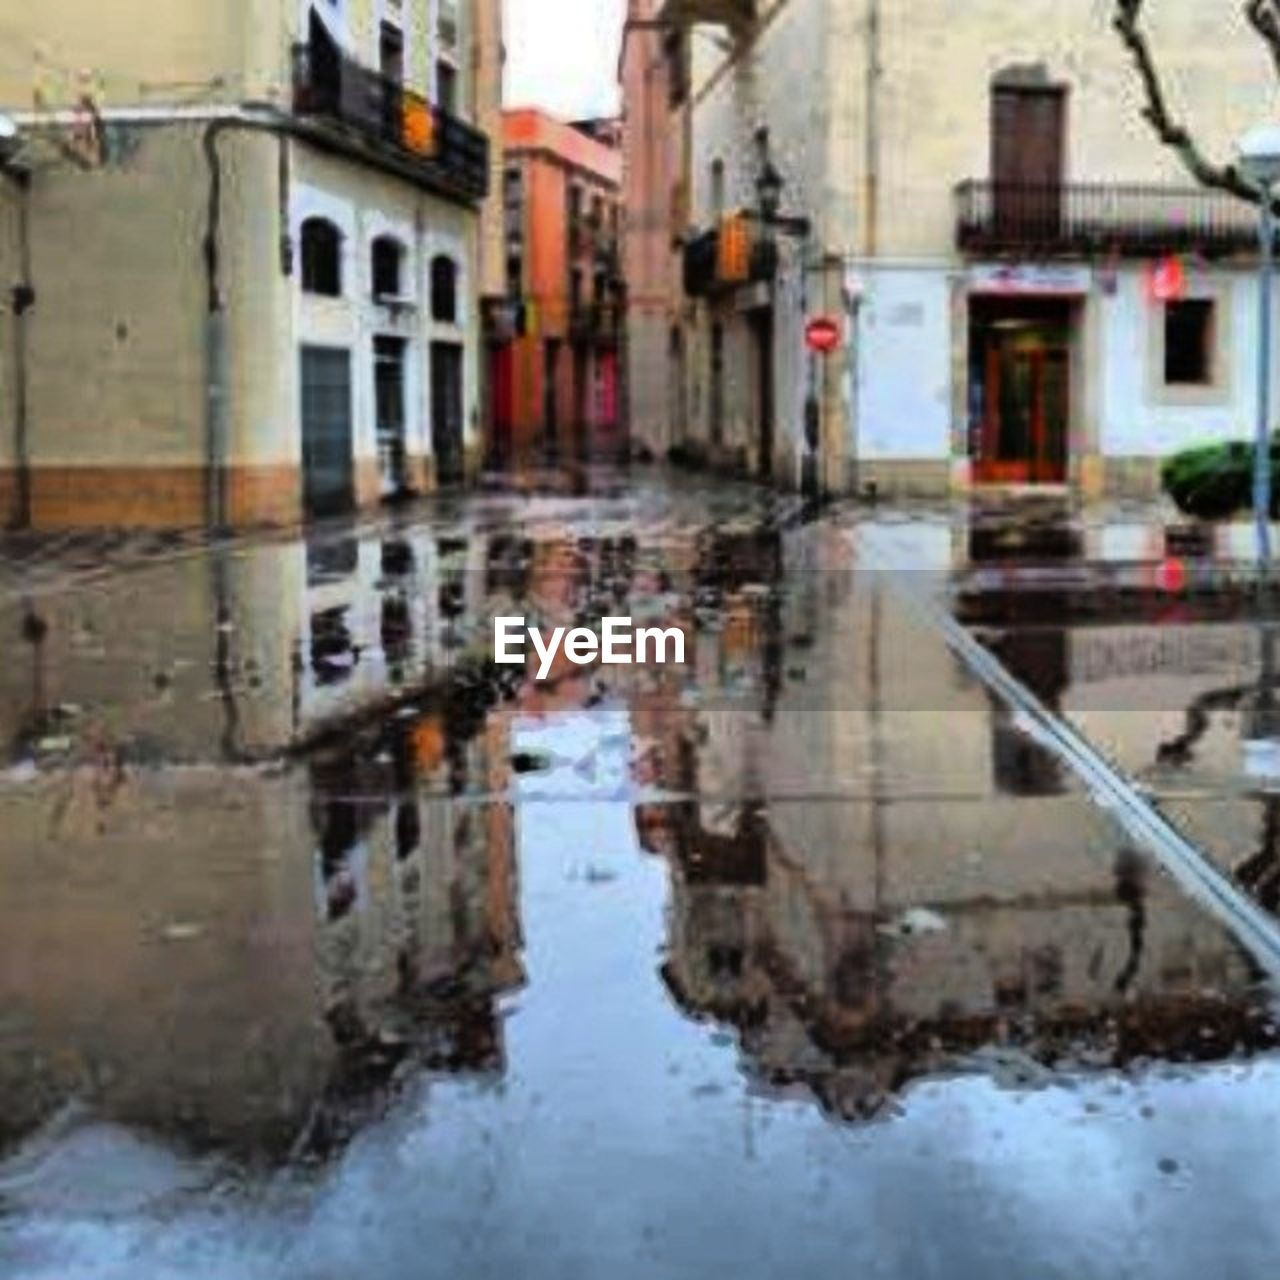 reflection, water, puddle, wet, day, outdoors, city, building exterior, no people, architecture